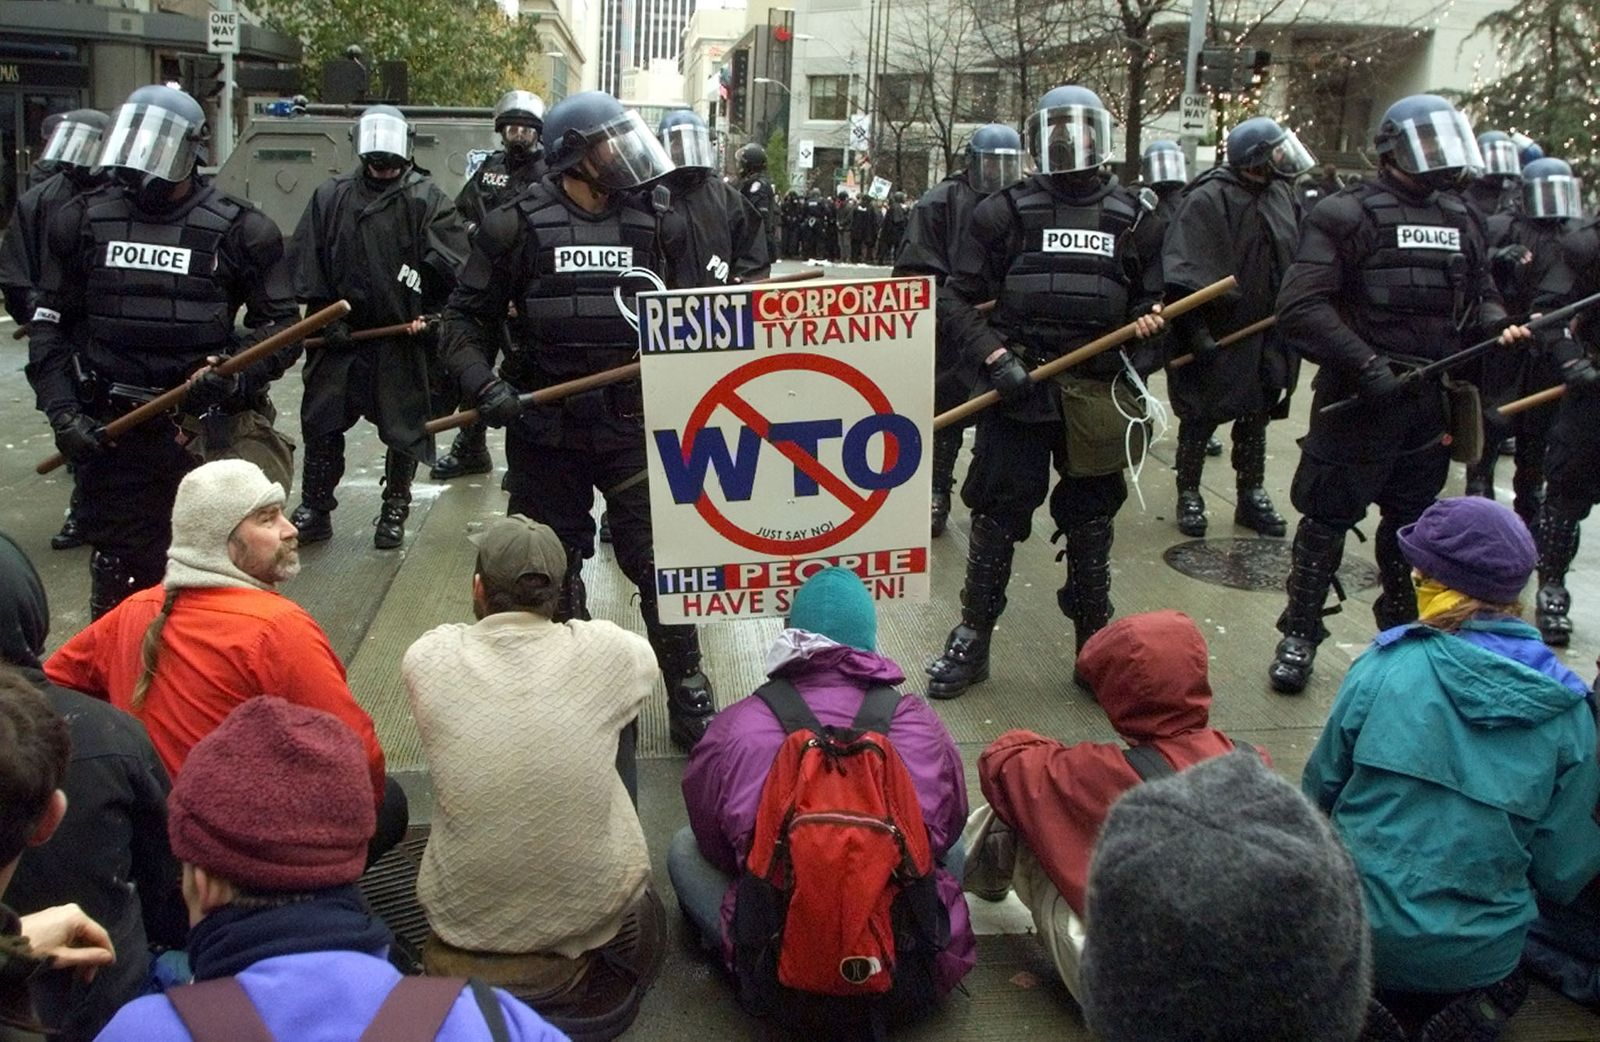 PROTESTERS BLOCK POLICE LINE AT WTO CONFERENCE